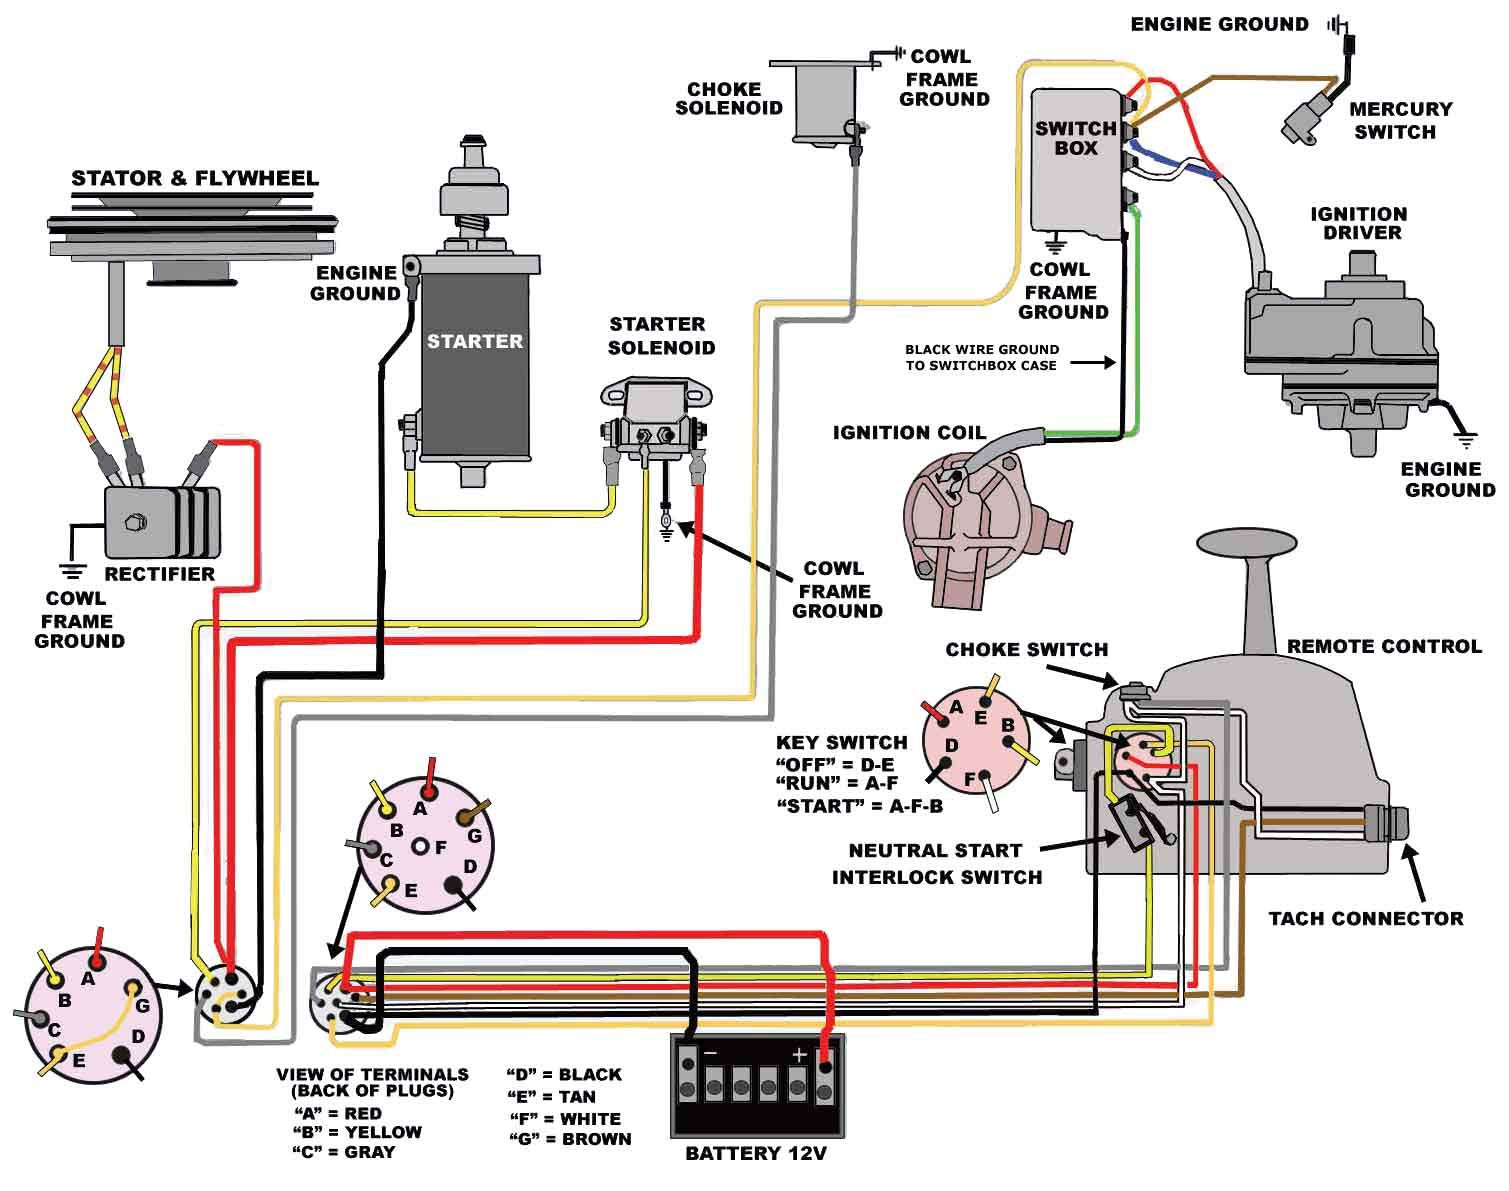 13cfb2d962bcd0c03103625817b7d51d mercury outboard wiring diagram diagram pinterest mercury camper wiring diagram at virtualis.co